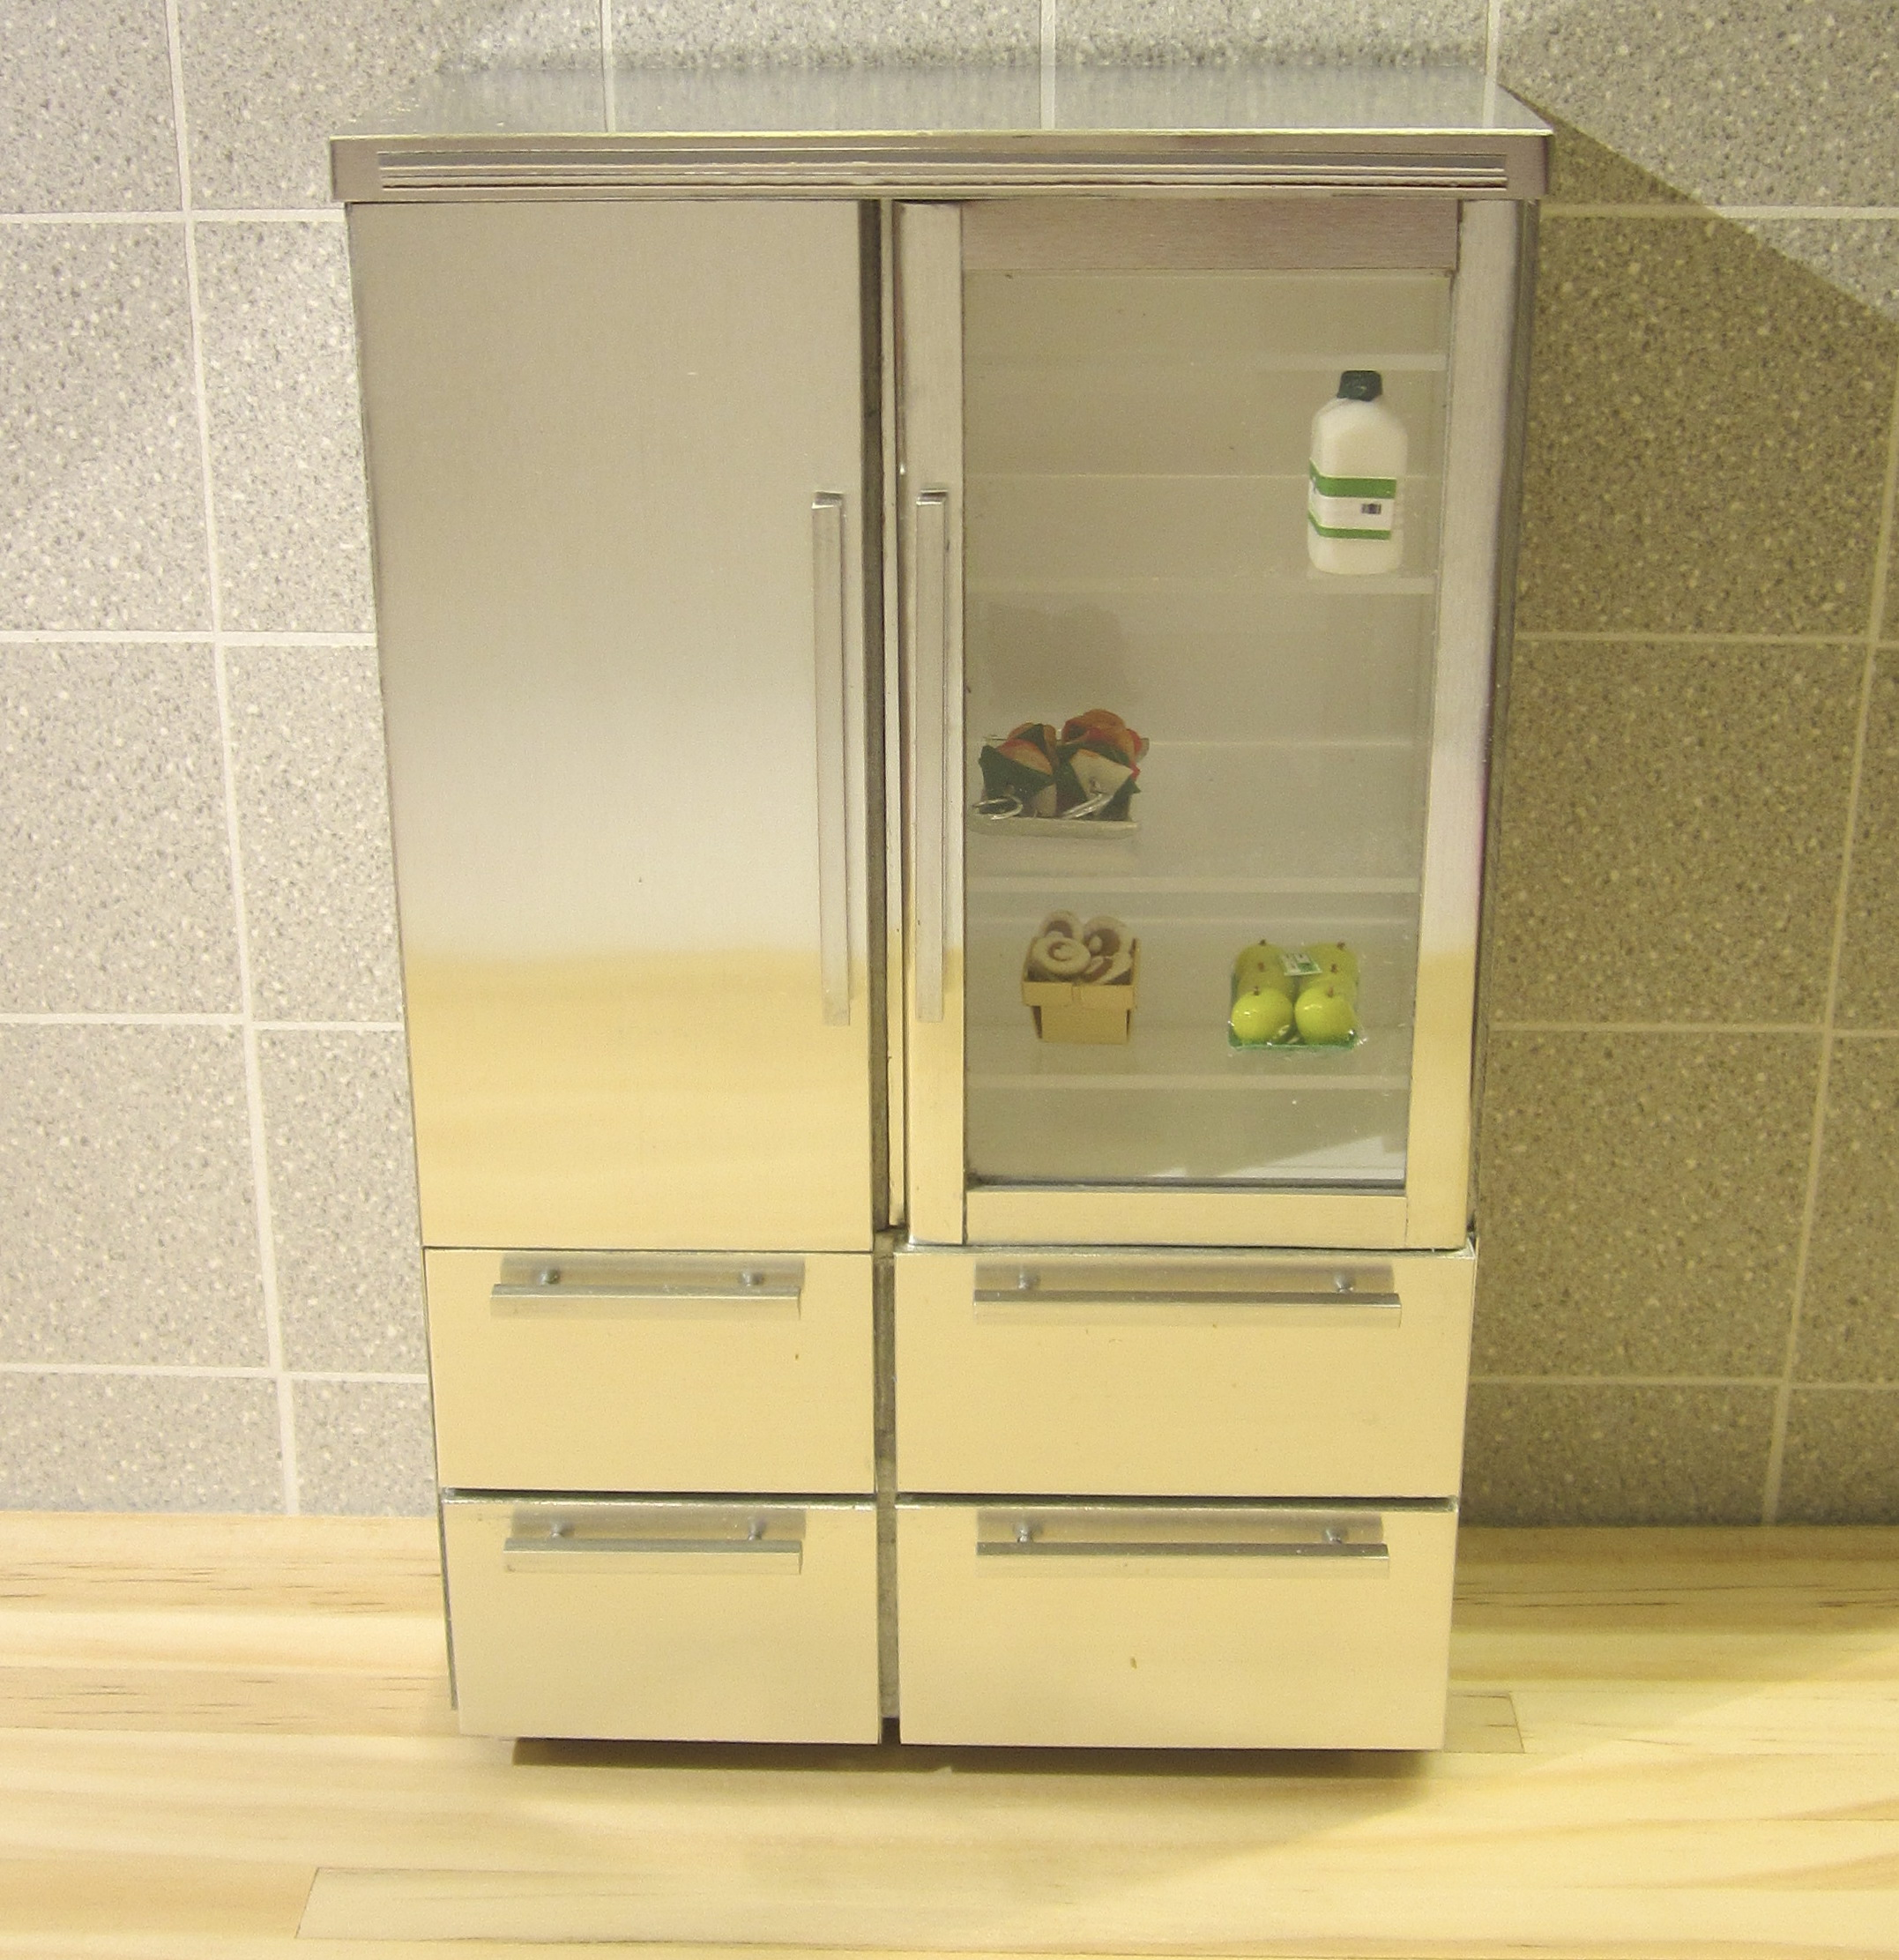 1:10 2-DOOR FRIDGE WITH DRAWERS